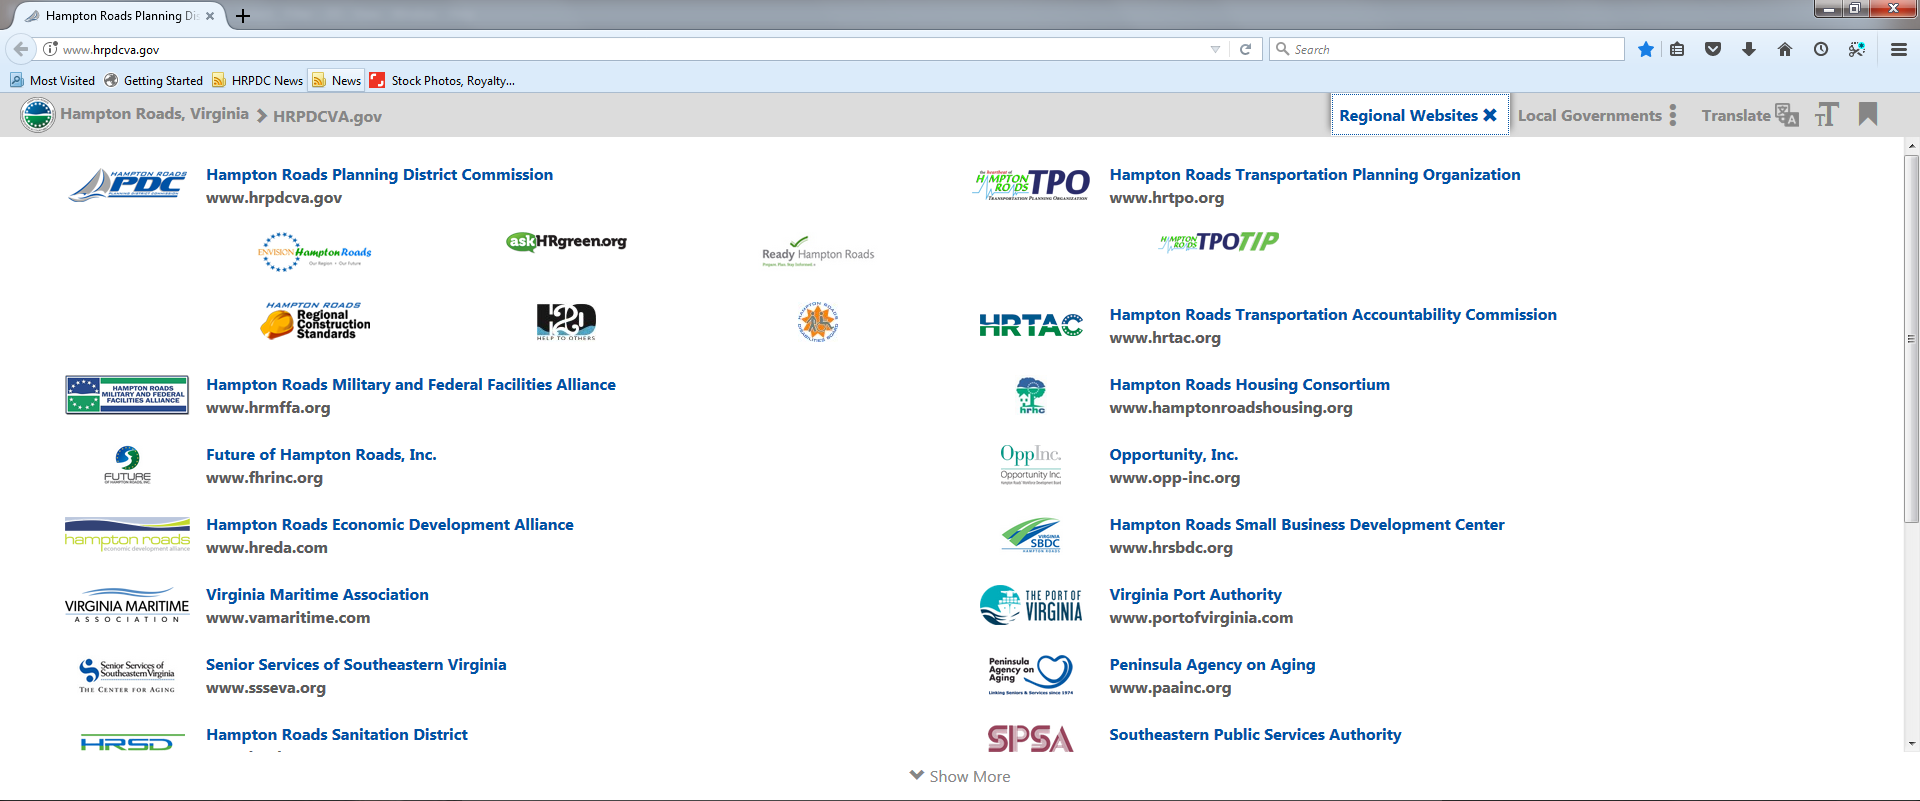 Image of the Regional Partners Drop Down menu available from the Regional Website Banner on the HRPDC website.